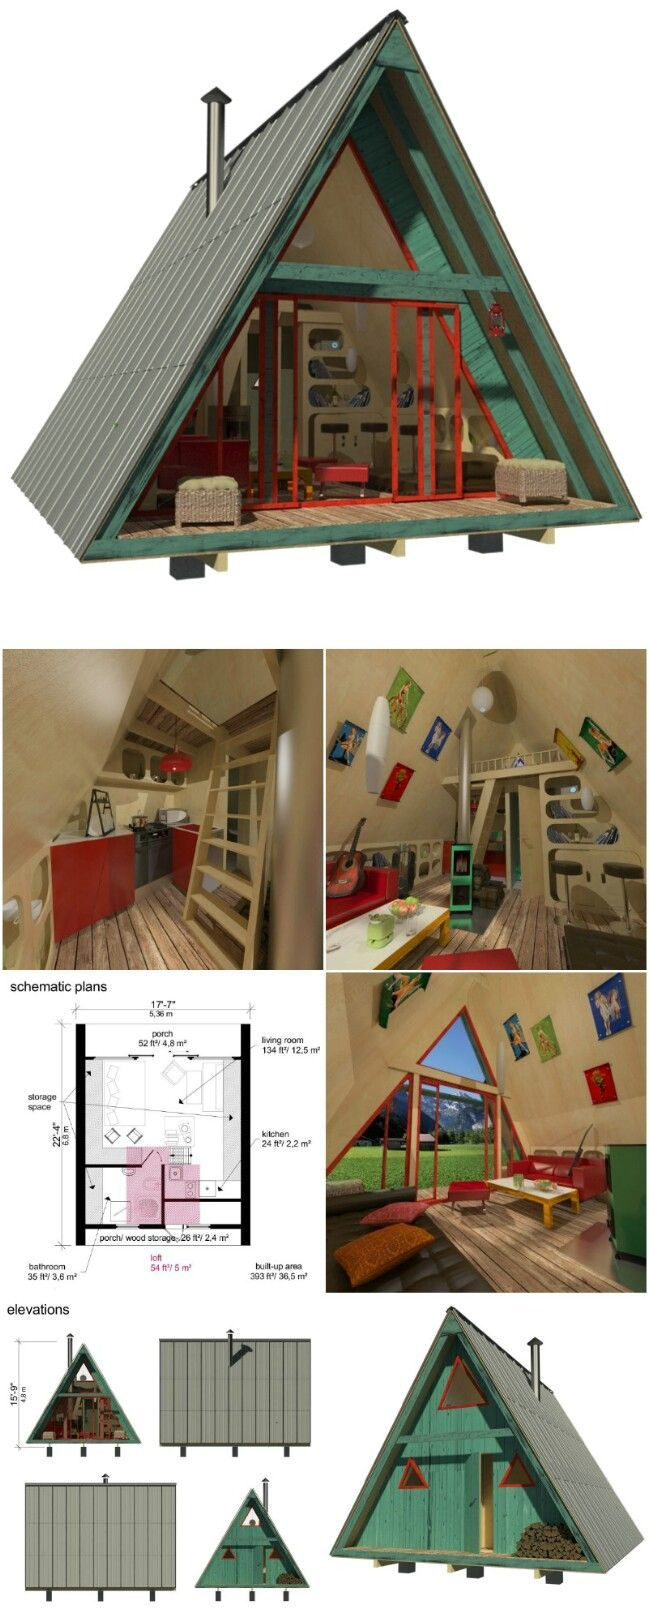 House design yourself - 25 Plans To Build Your Own Fully Customized Tiny House On A Budget Tiny Houses